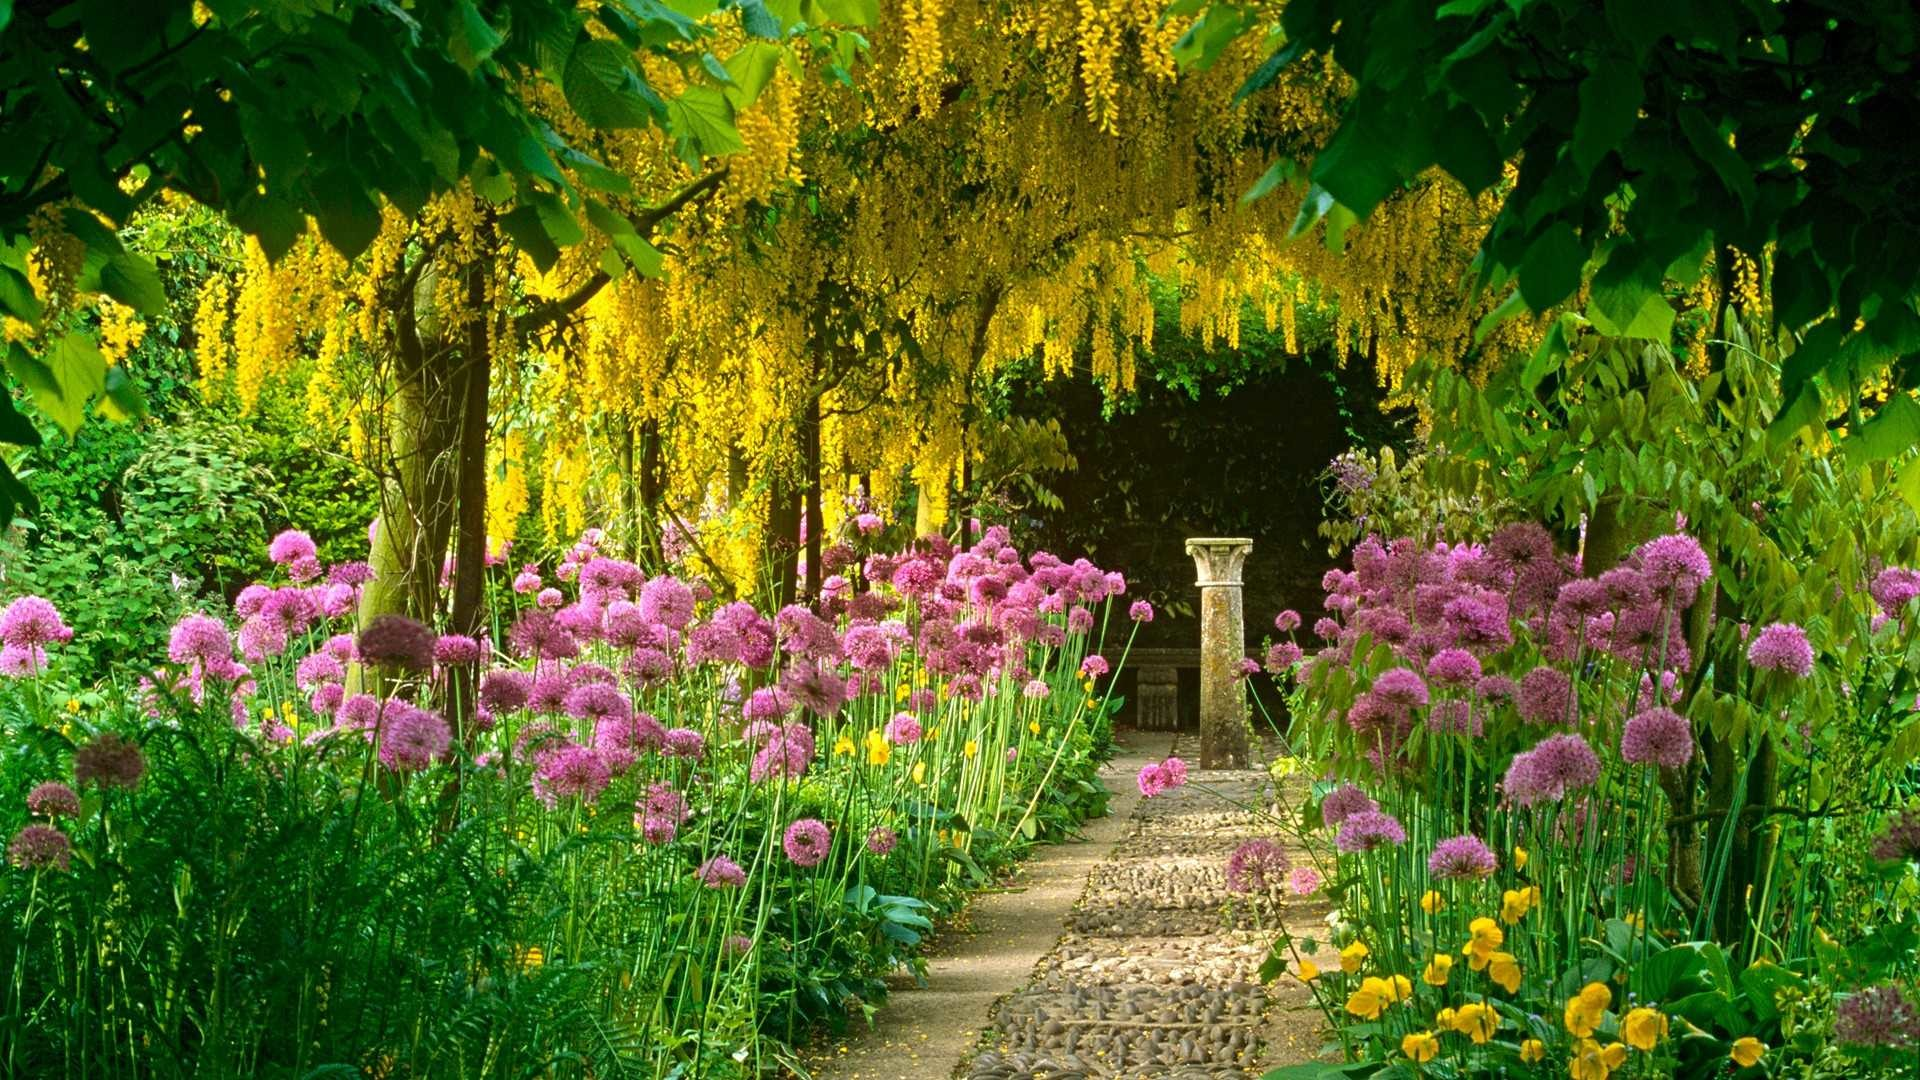 1920x1080 Flower Garden Hd Collection Of Beautiful Gardens With Best Flowers In A  Inspirations Wallpaper Download Best